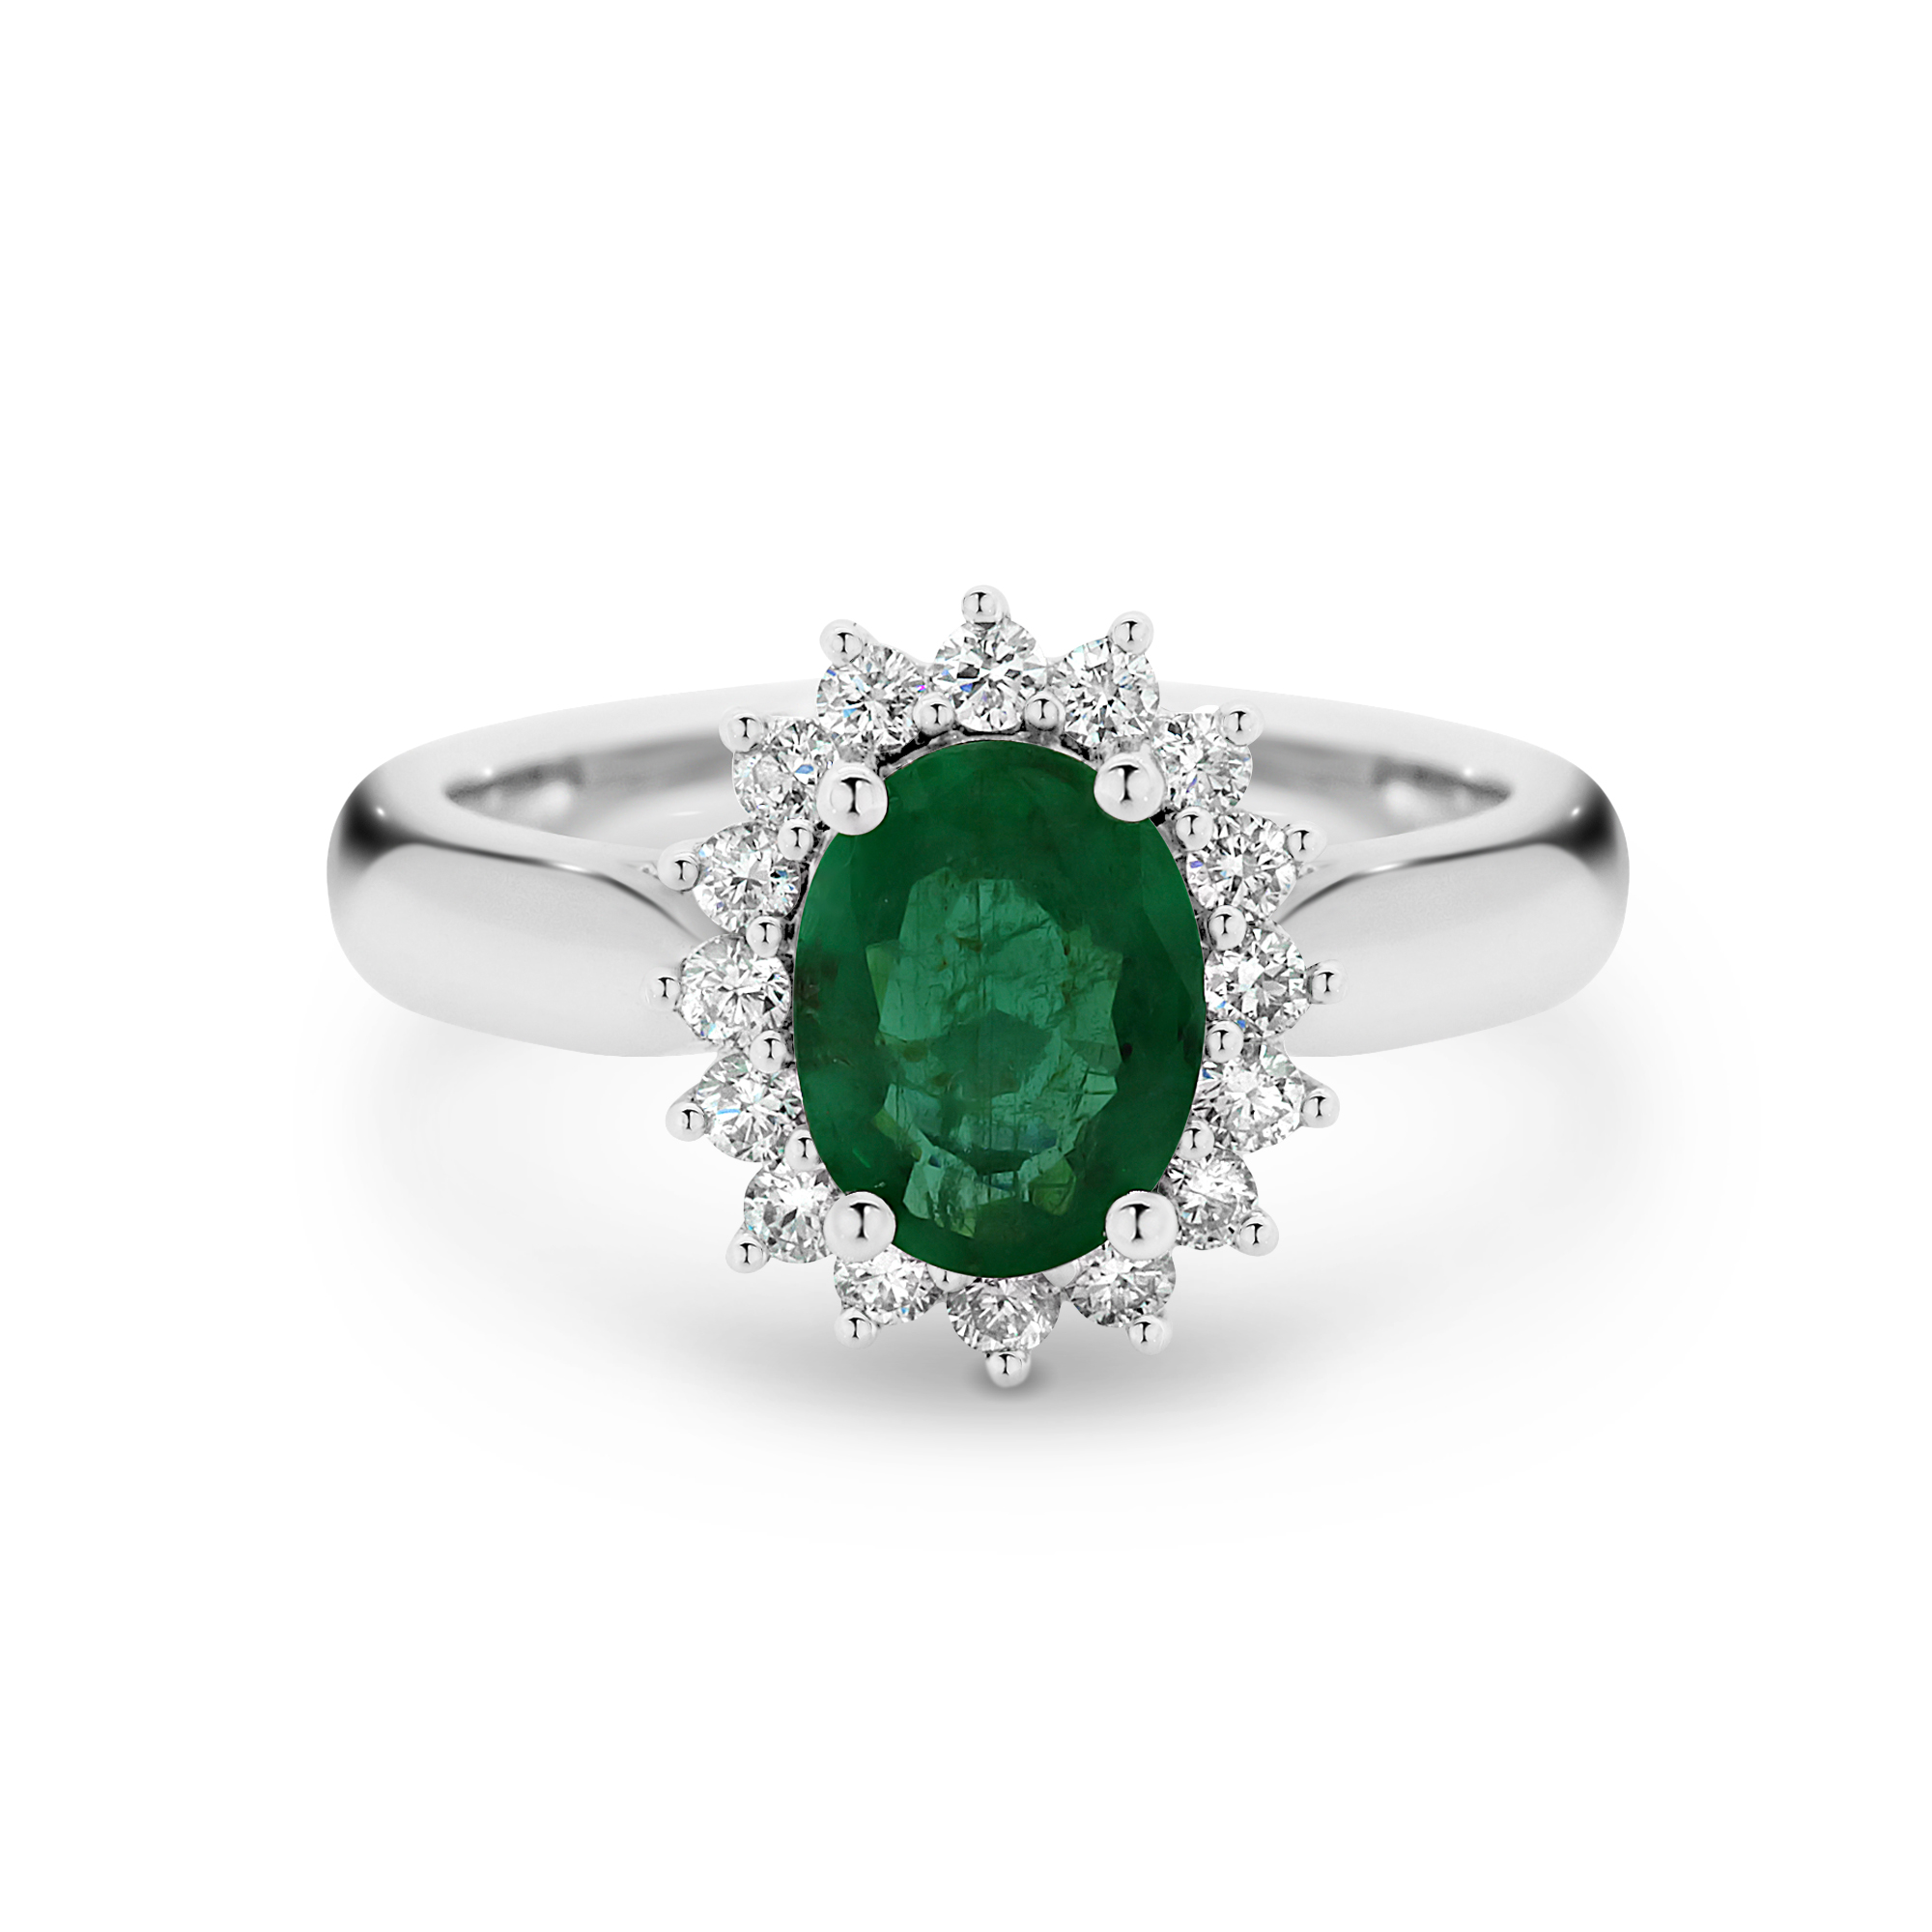 gold jewellery ashton the diamond rose david cut handmade ring emerald img contemporary wedding product london in finest